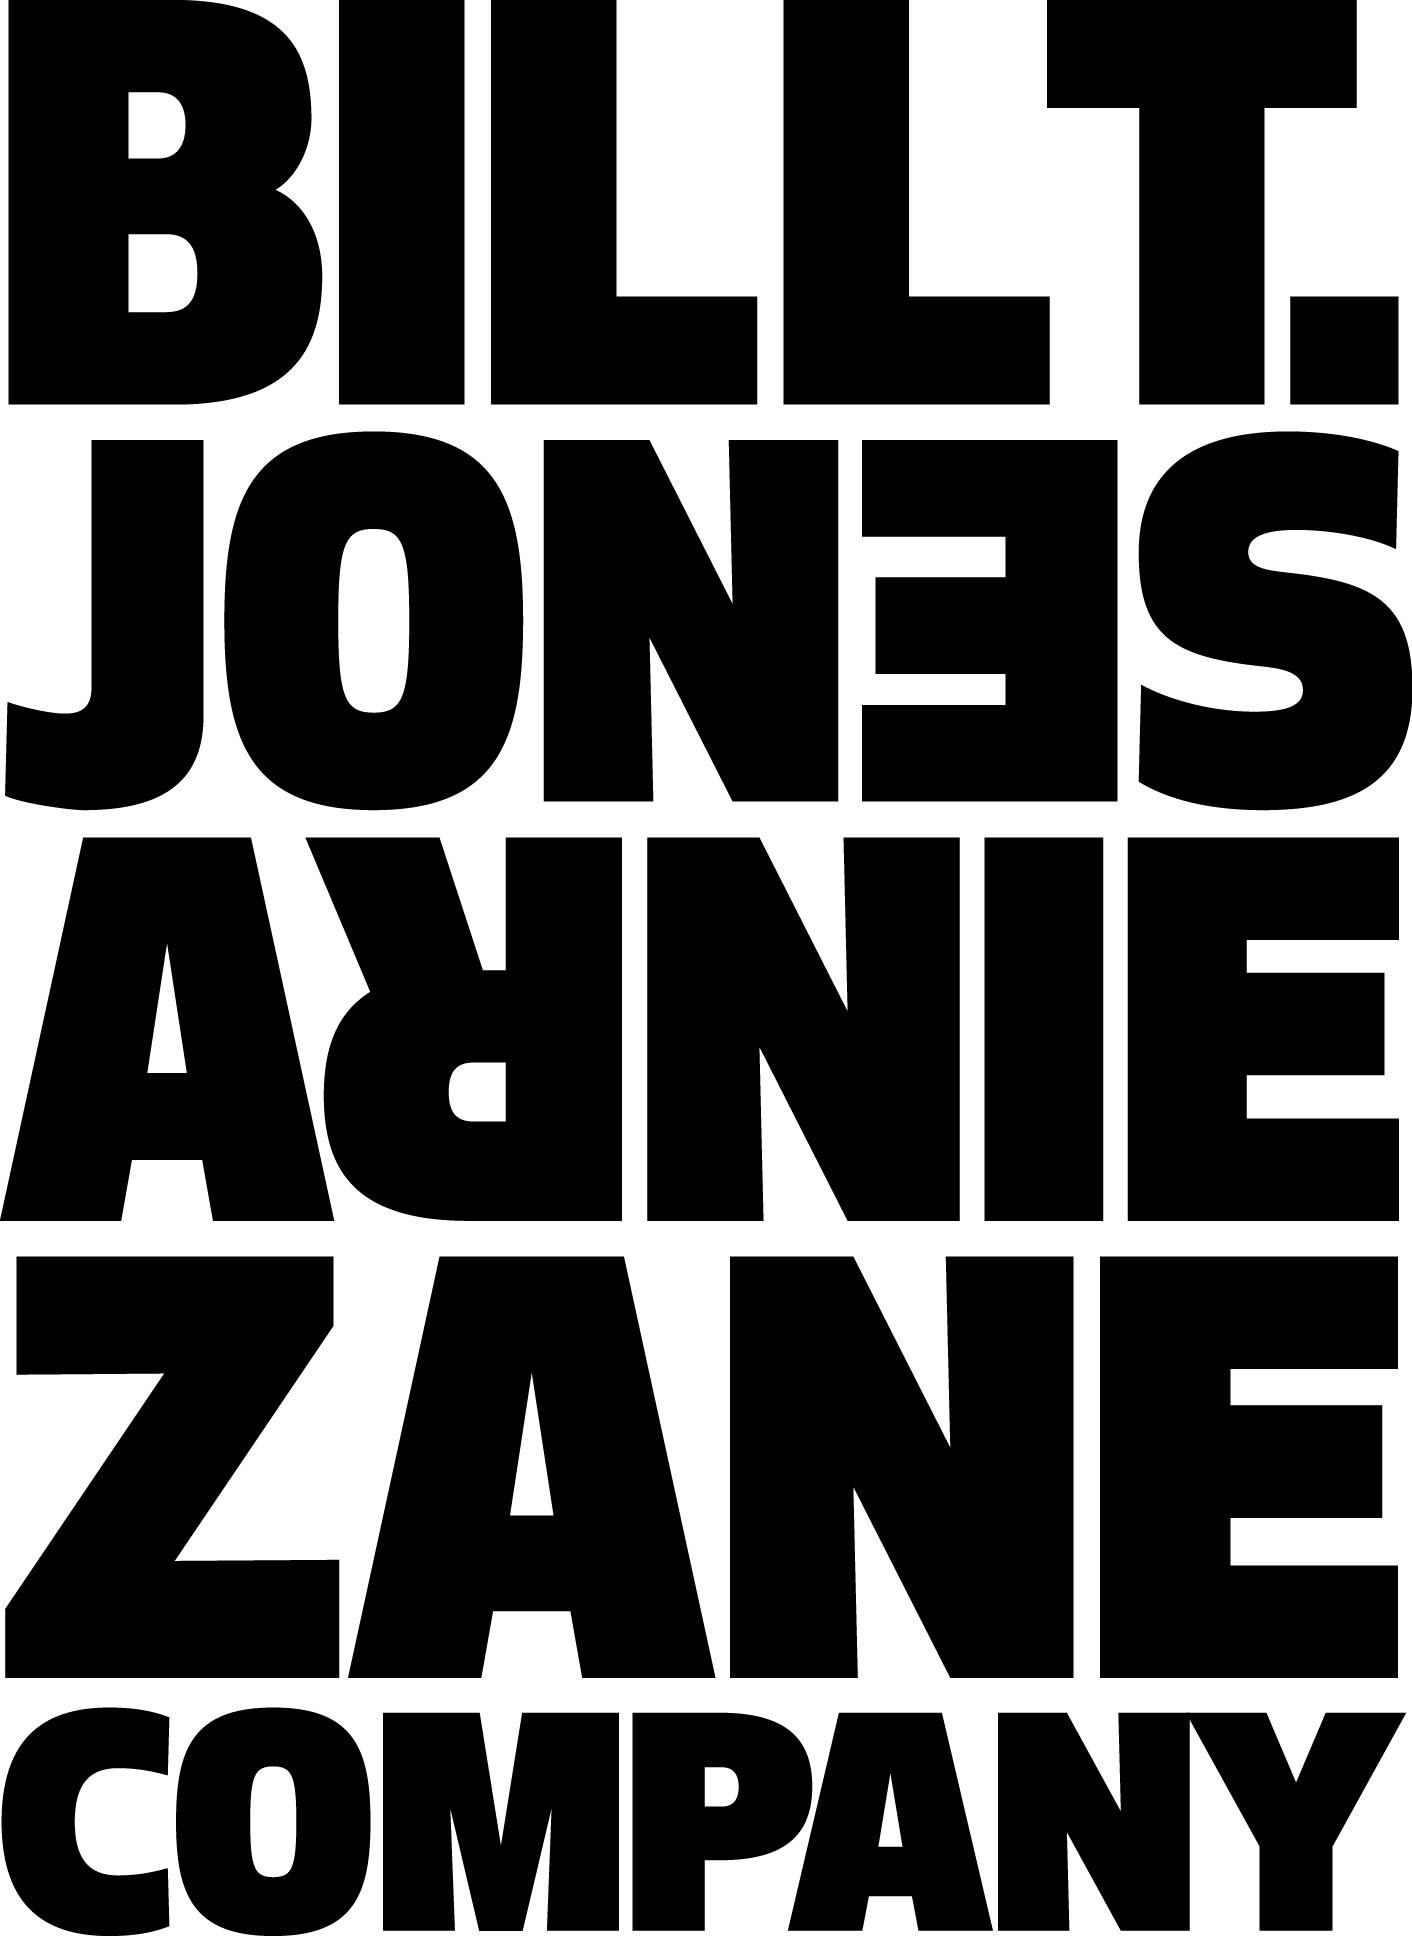 Bill T. Jones/Arnie Zane Company logo